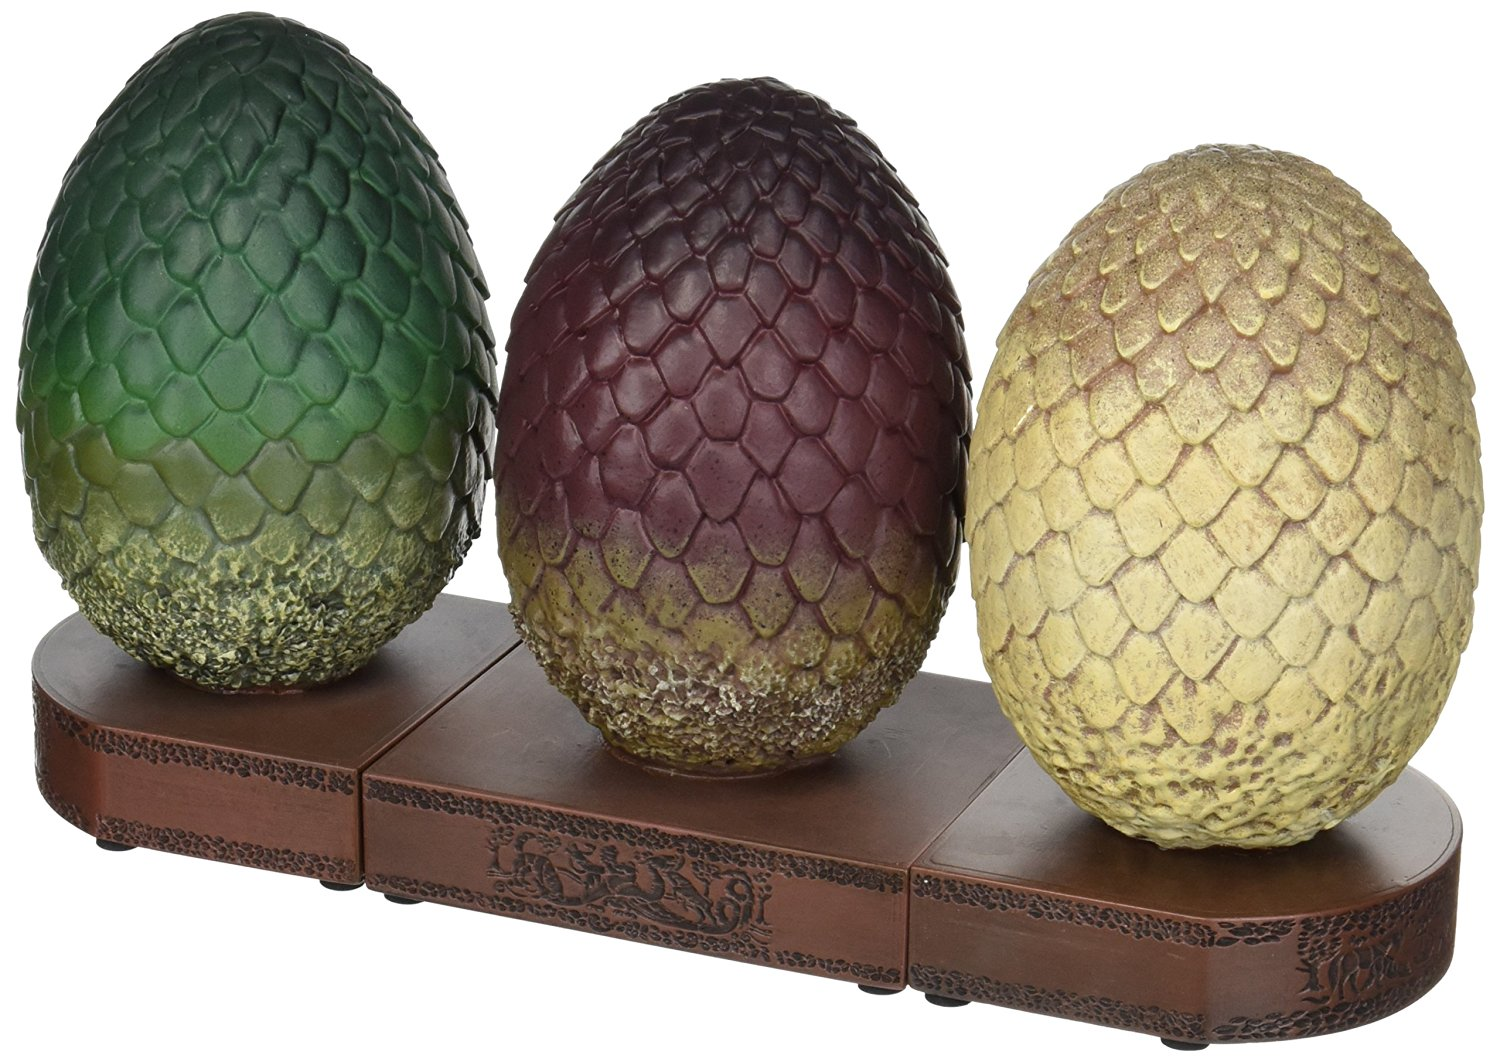 Game of Thrones Dragon Eggs Bookend